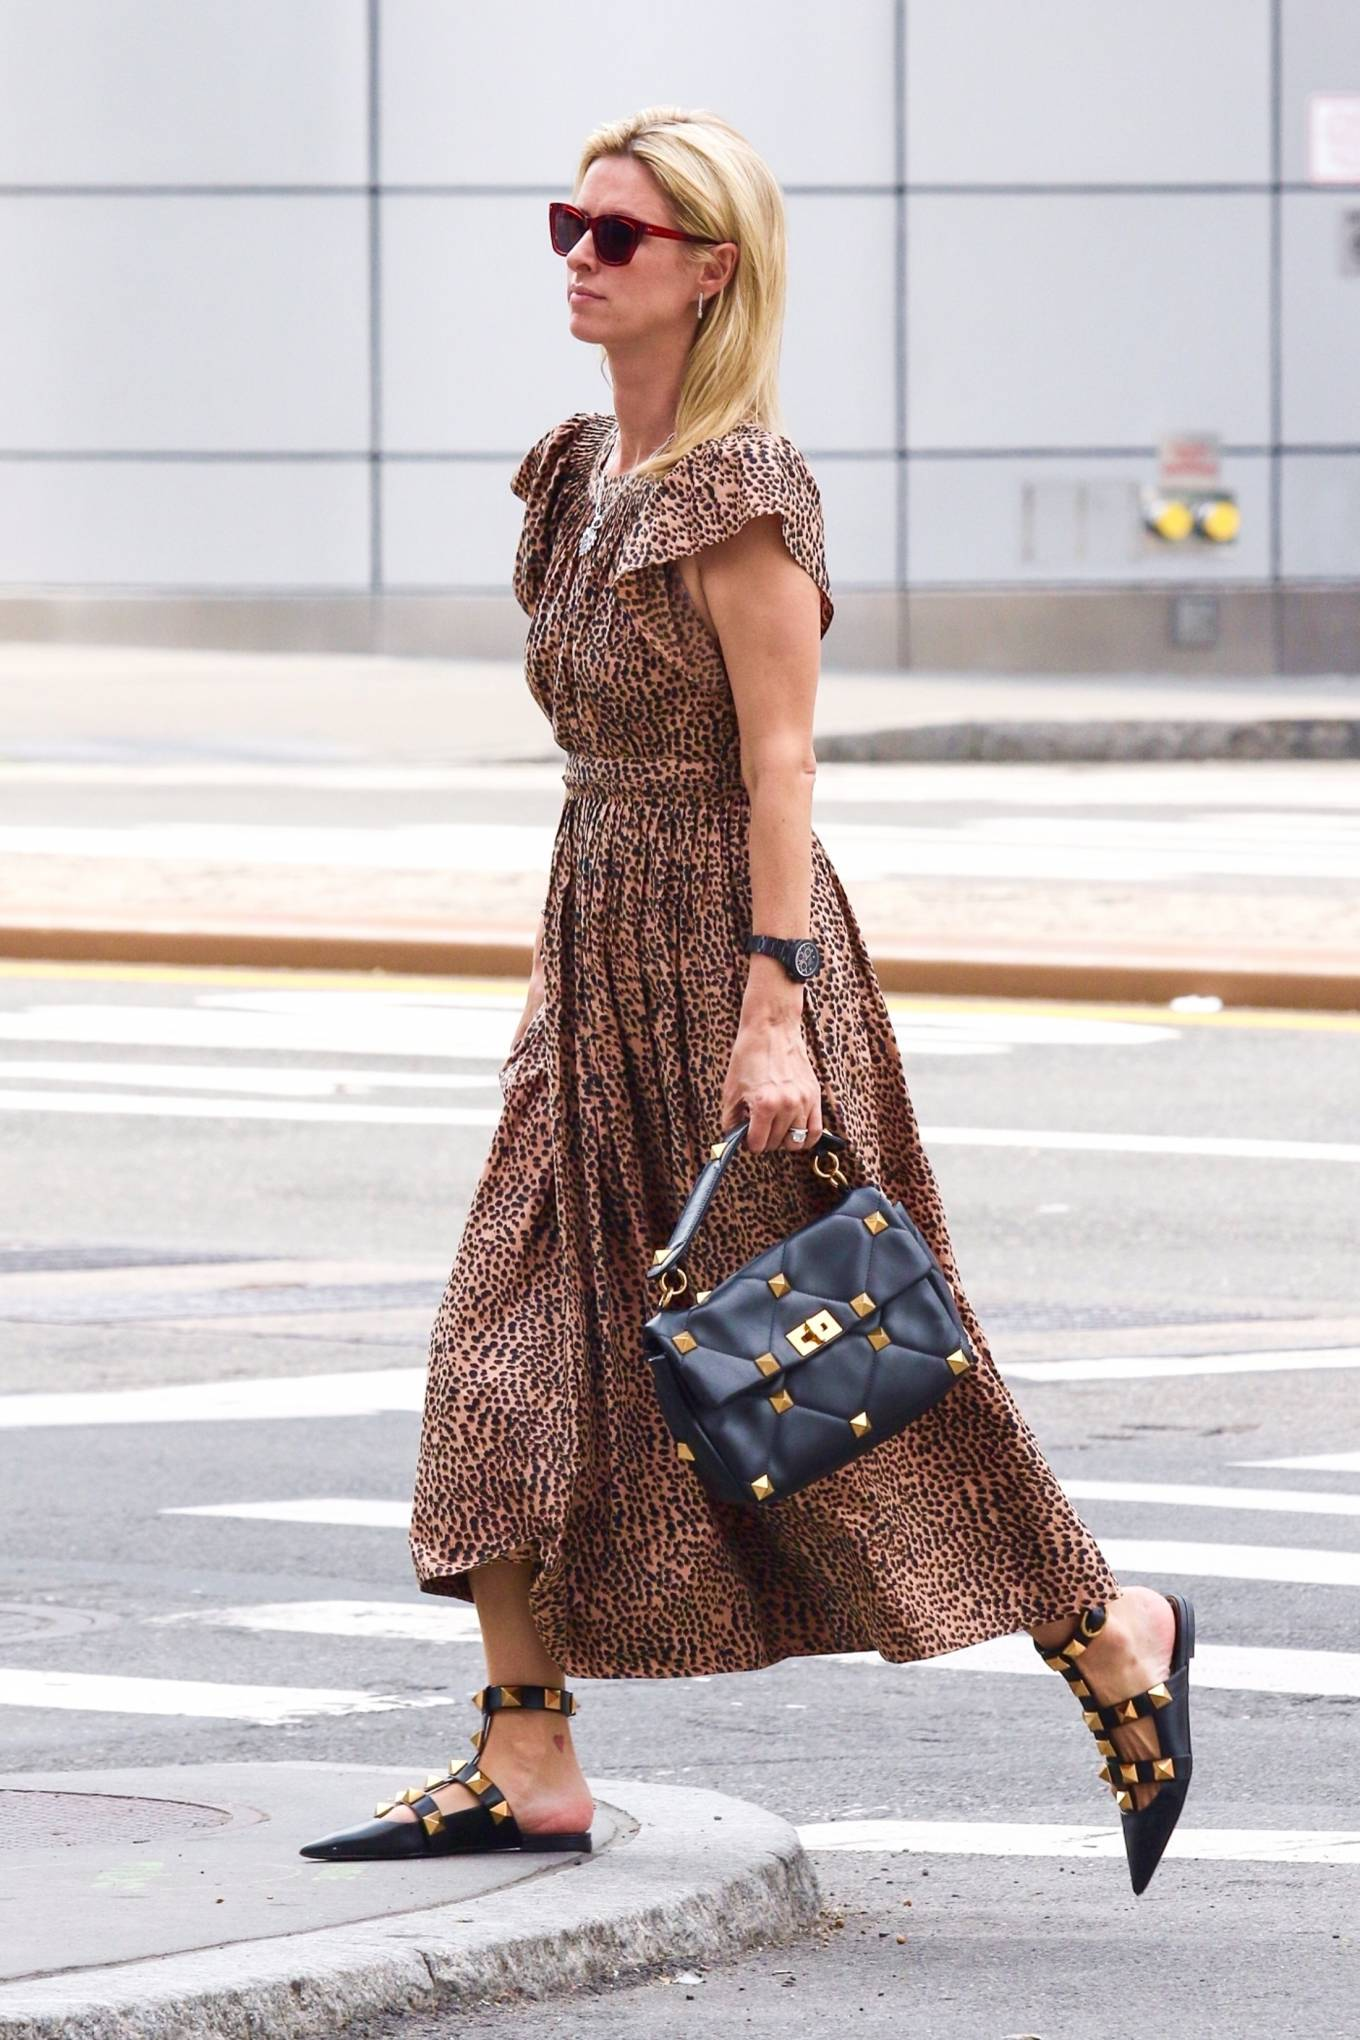 Nicky Hilton - Rocks leopard print dress while out in Downtown Manhattan